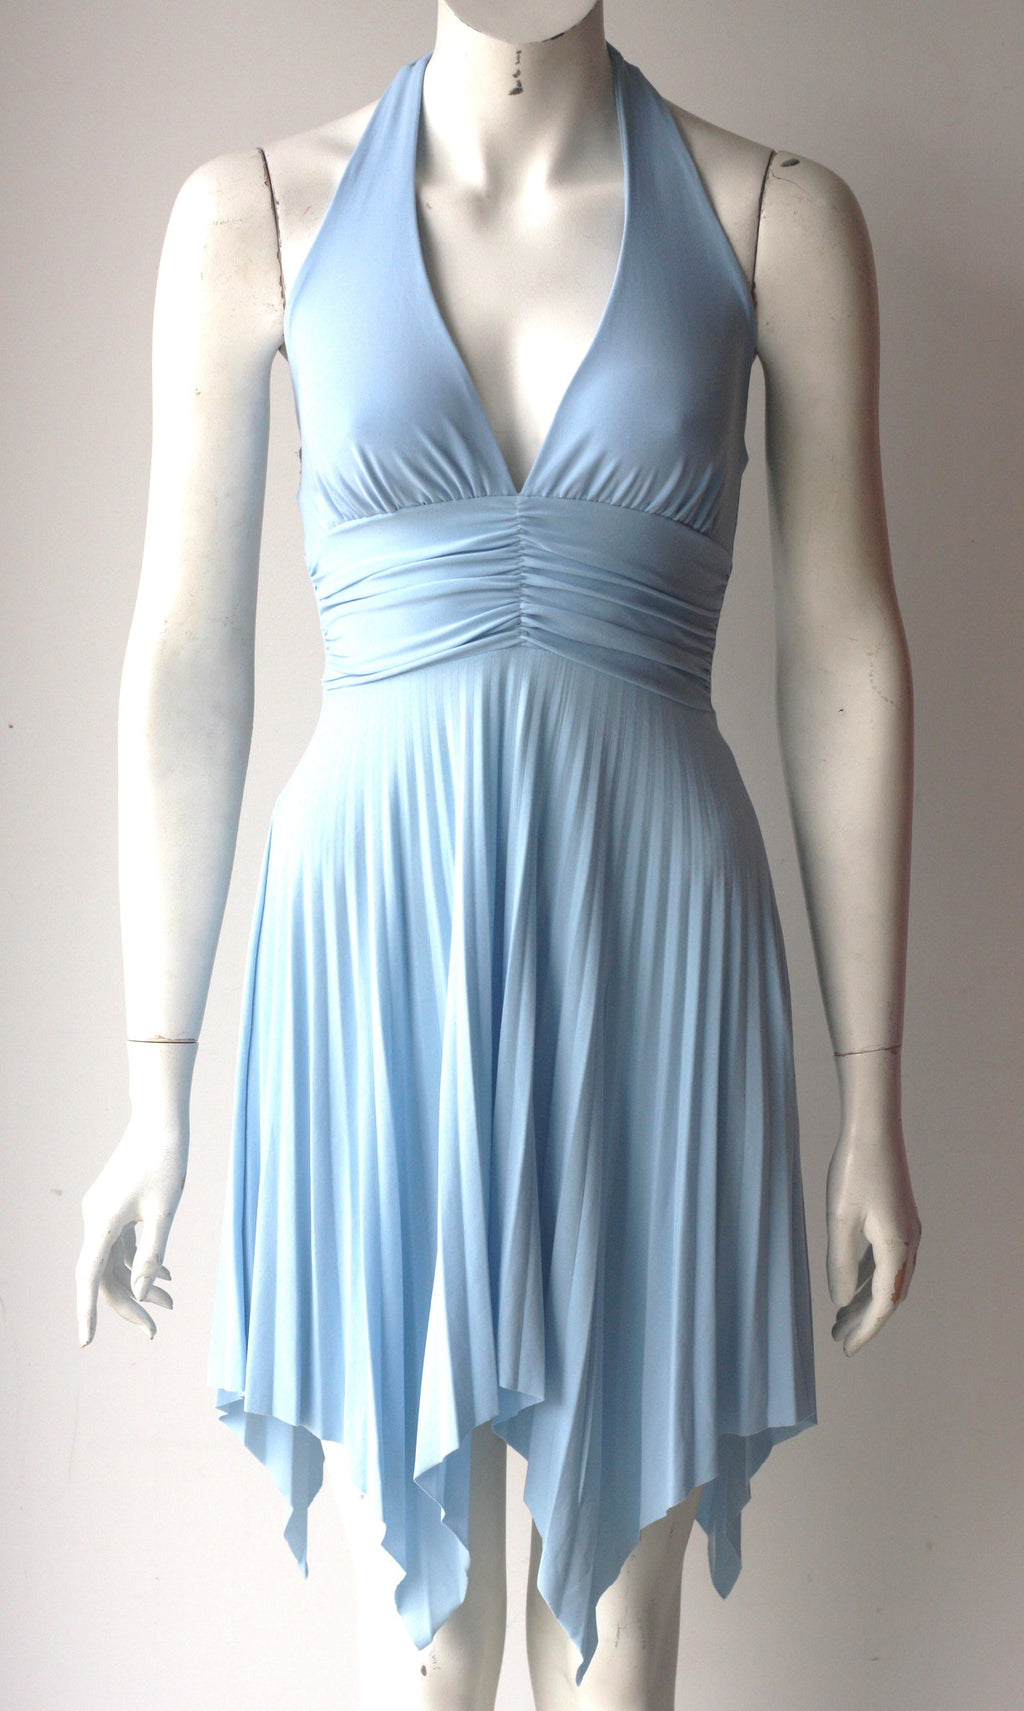 Brand New Gianni Versace Couture Powder Blue Halter Dress - Joyce's Closet  - 1